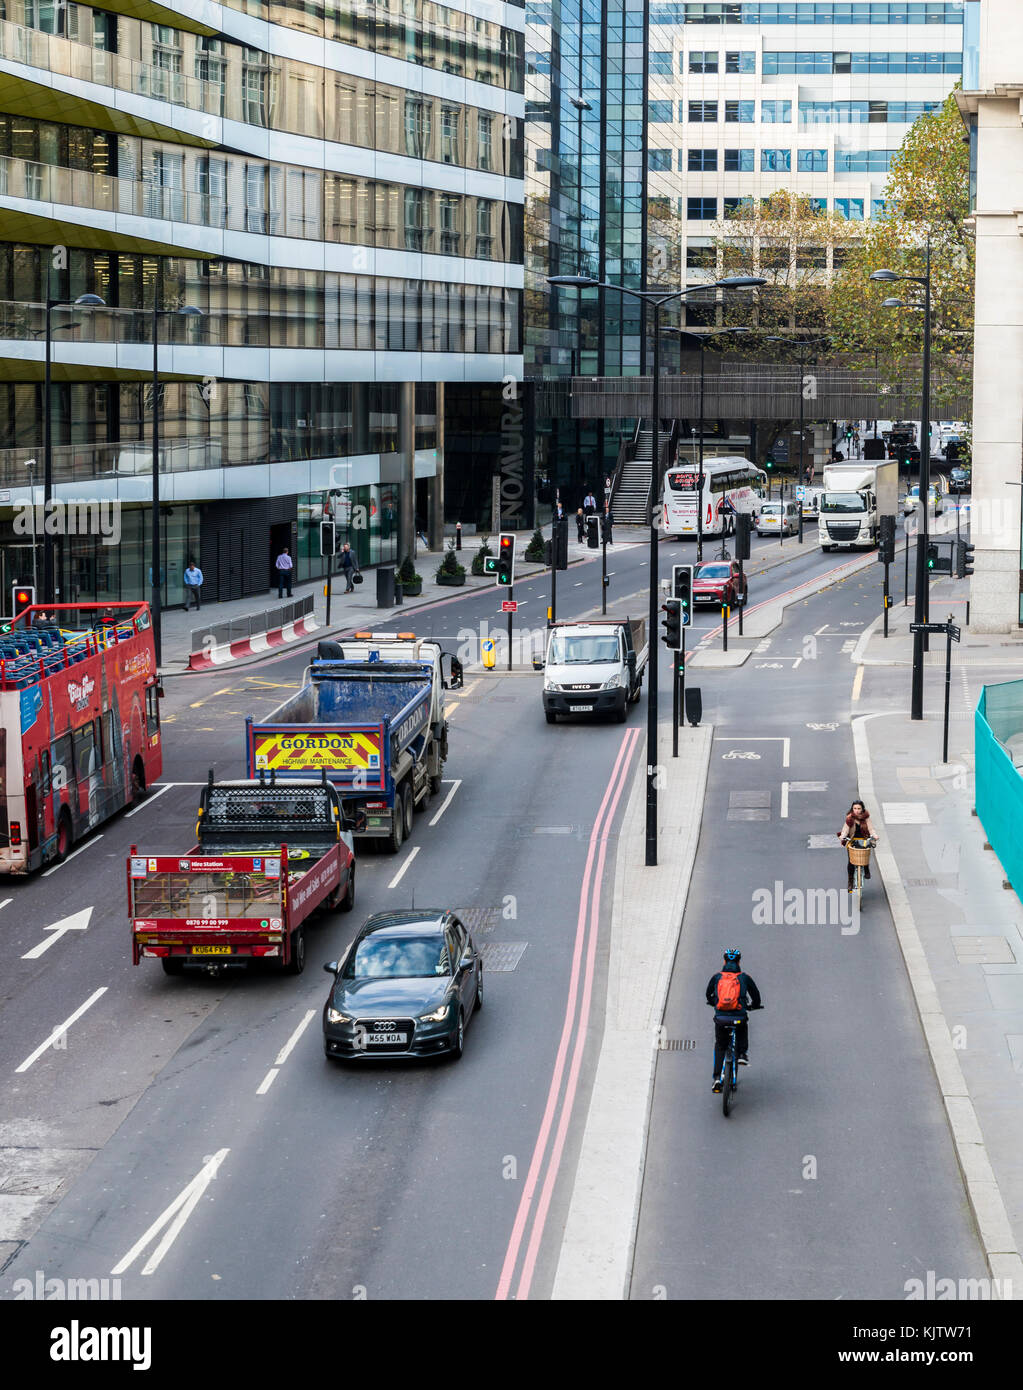 London, UK - Nov 22, 2017: Cyclists on safe segregated cycling lanes on Upper Thames Street in the City of London - Stock Image